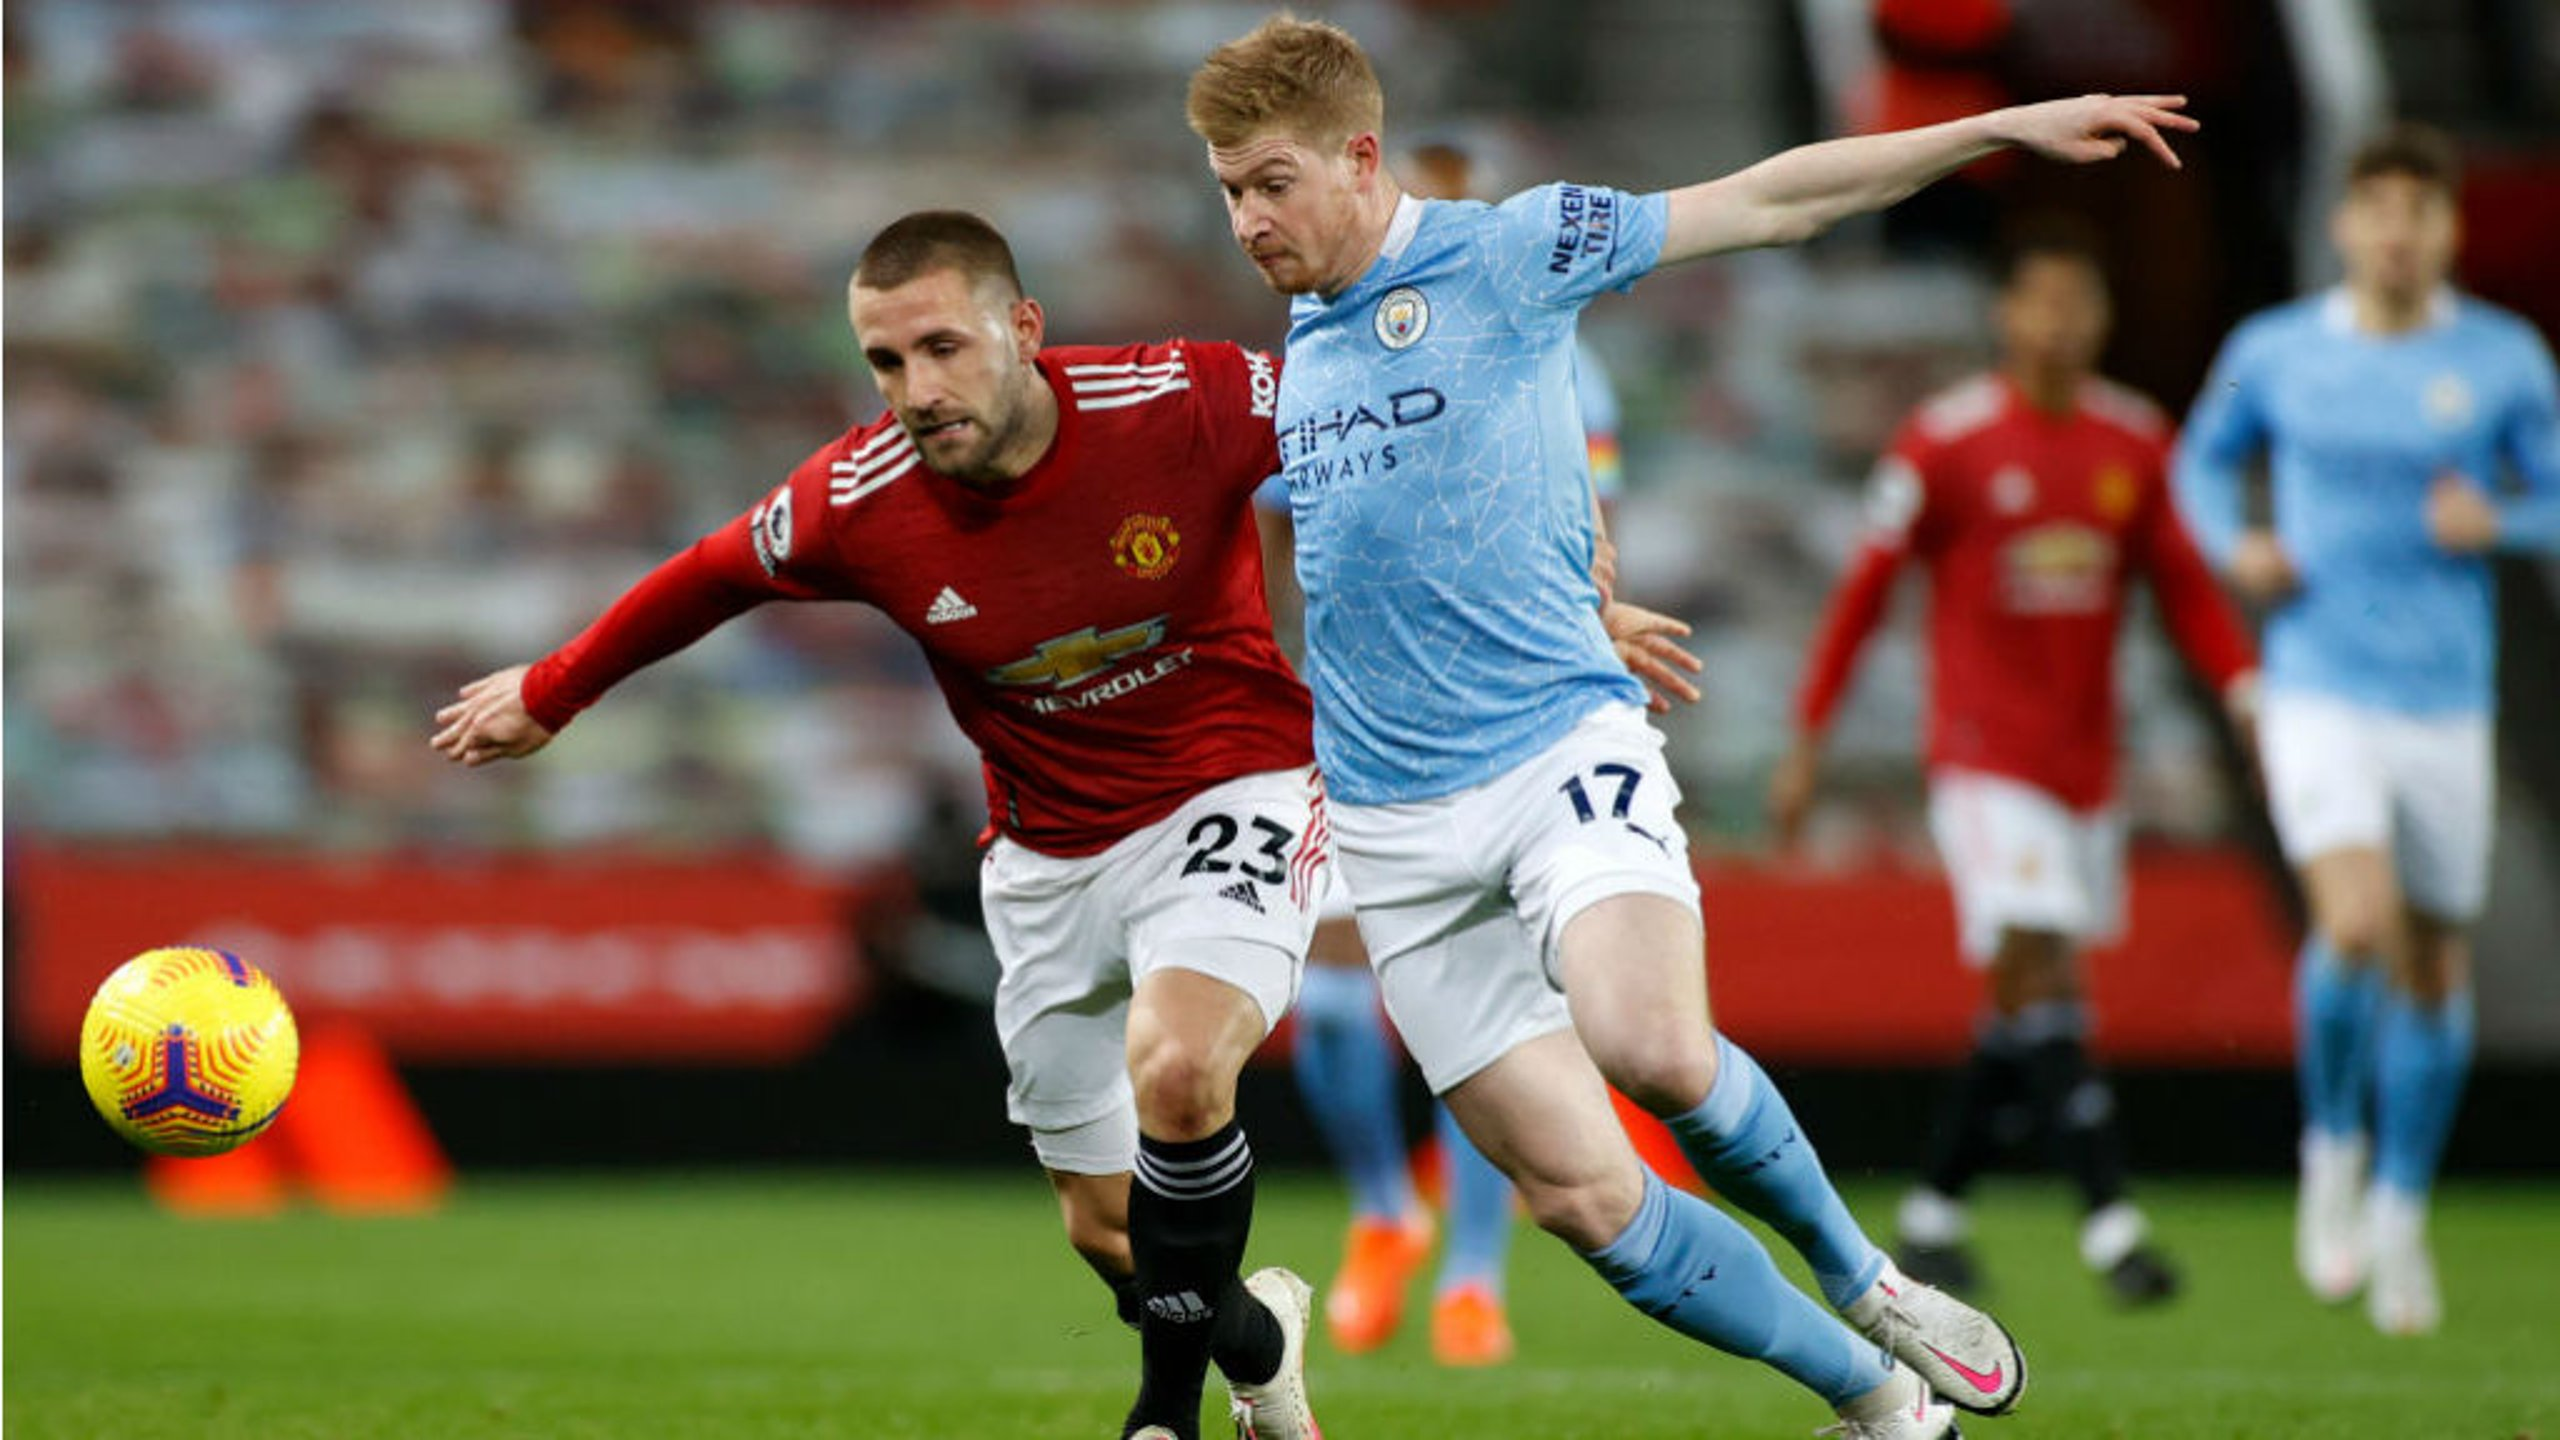 MIDDLE MARCH@ Kevin De Bruyne challenges Luke Shaw